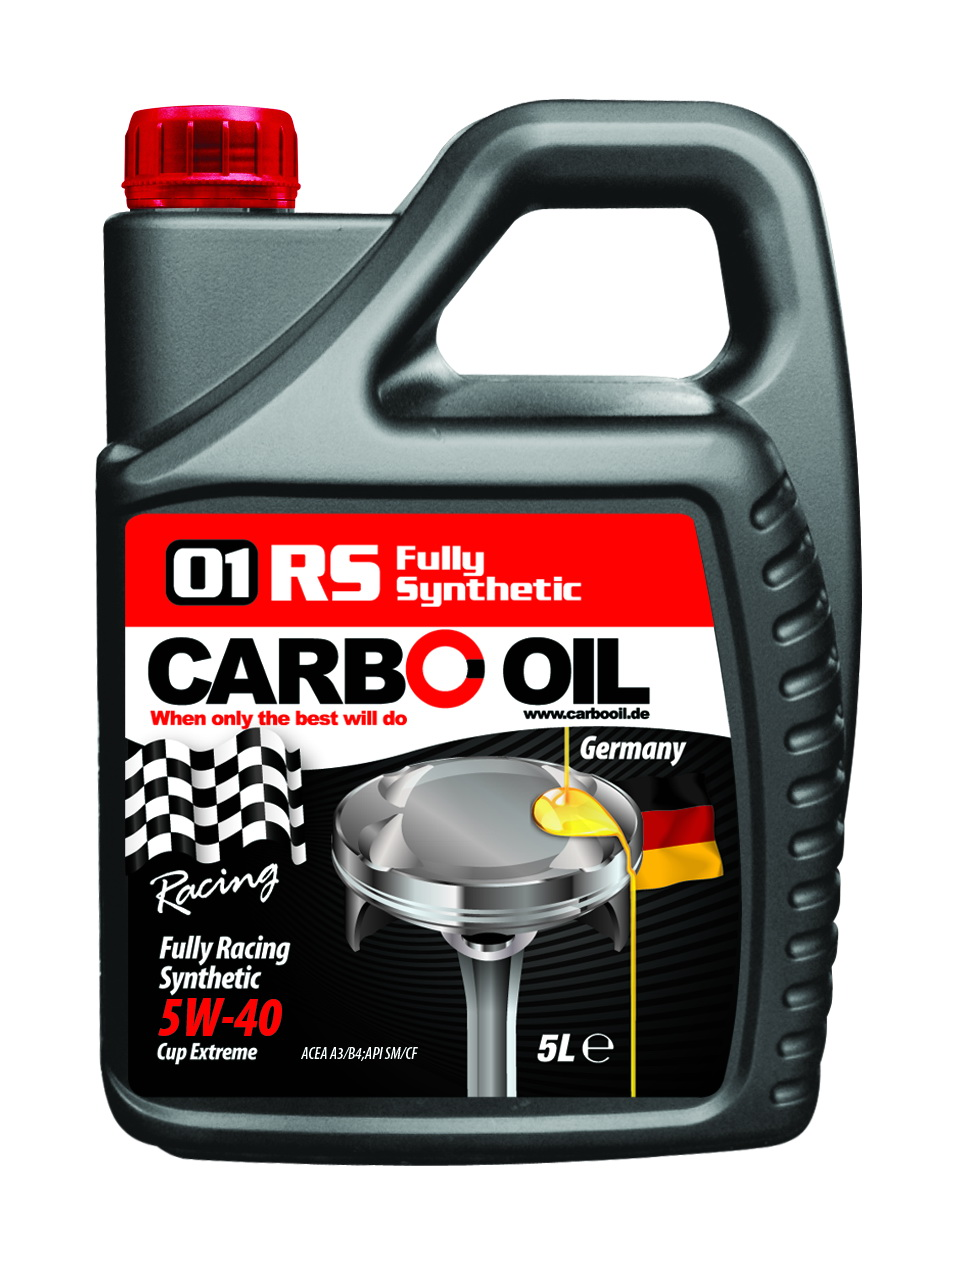 01 rs fully racing synthetic 5l 5w 40 0670 carbo oil for 5 w 40 motor oil